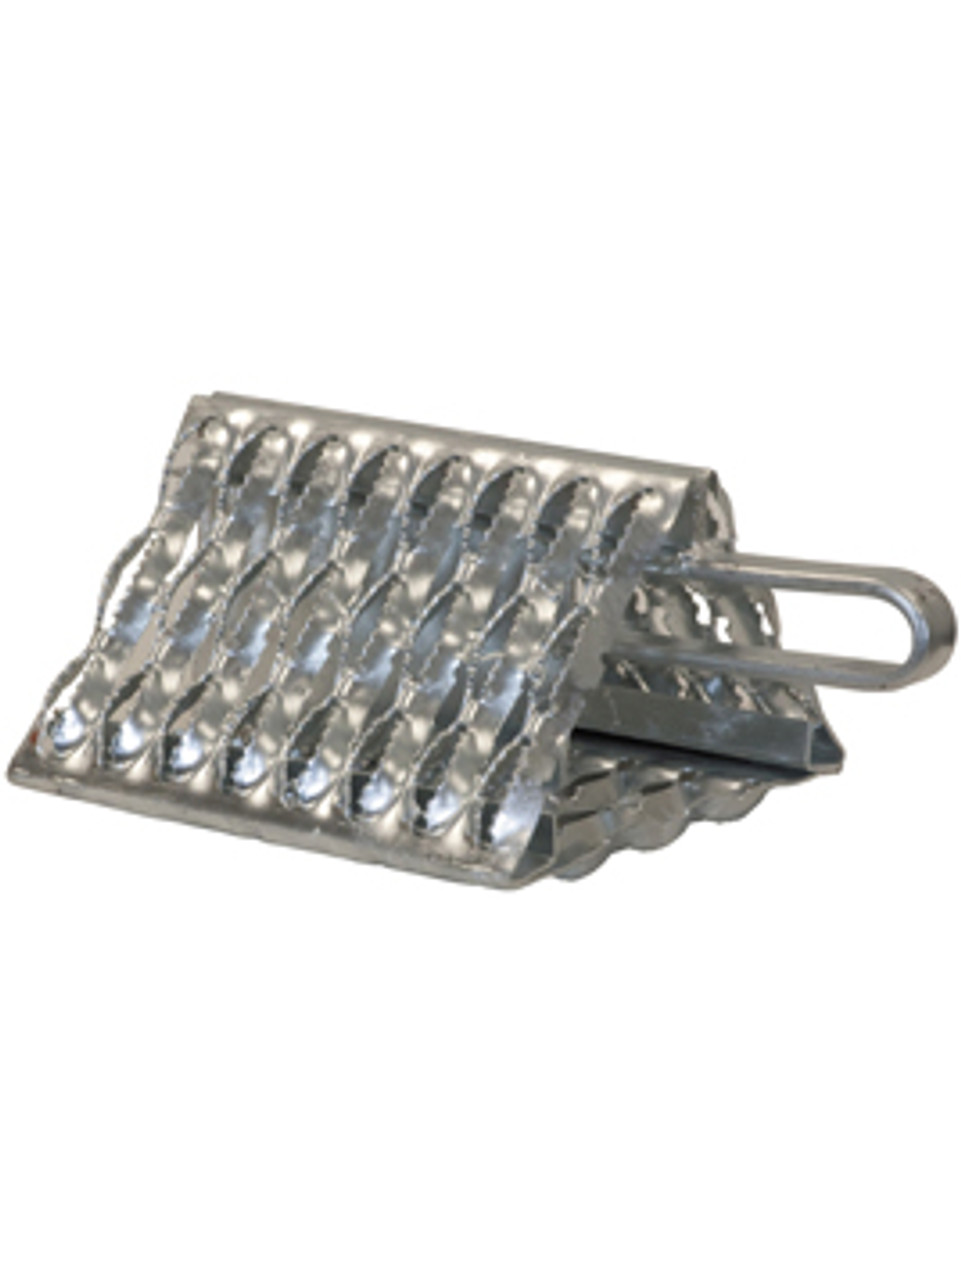 WC091060 --- Serrated Galvanized Wheel Chock